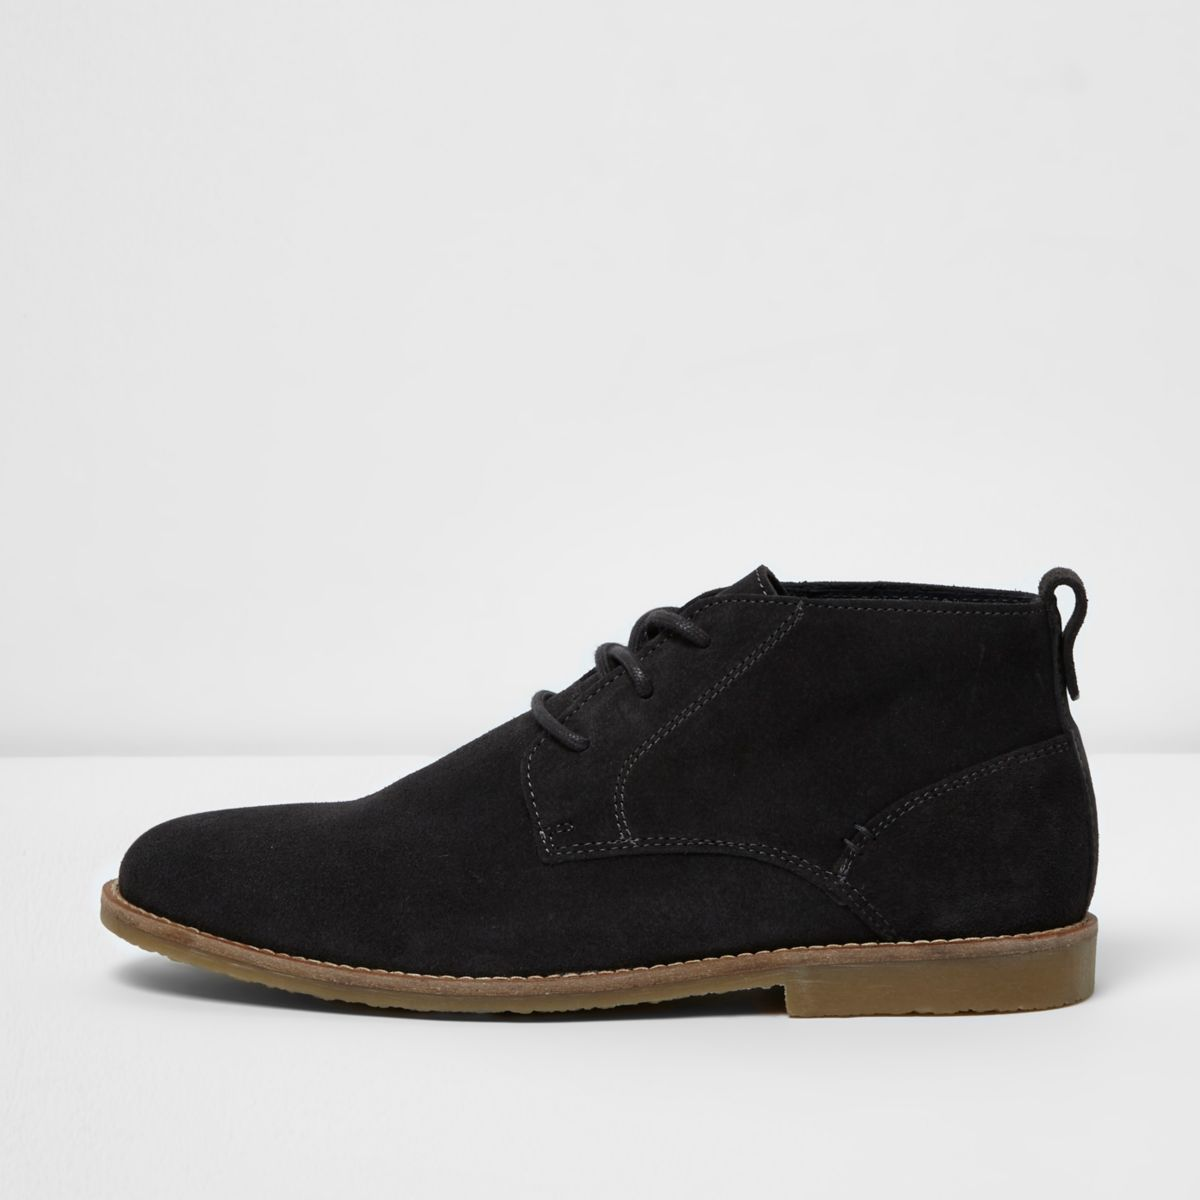 Dark grey wide fit suede desert boots